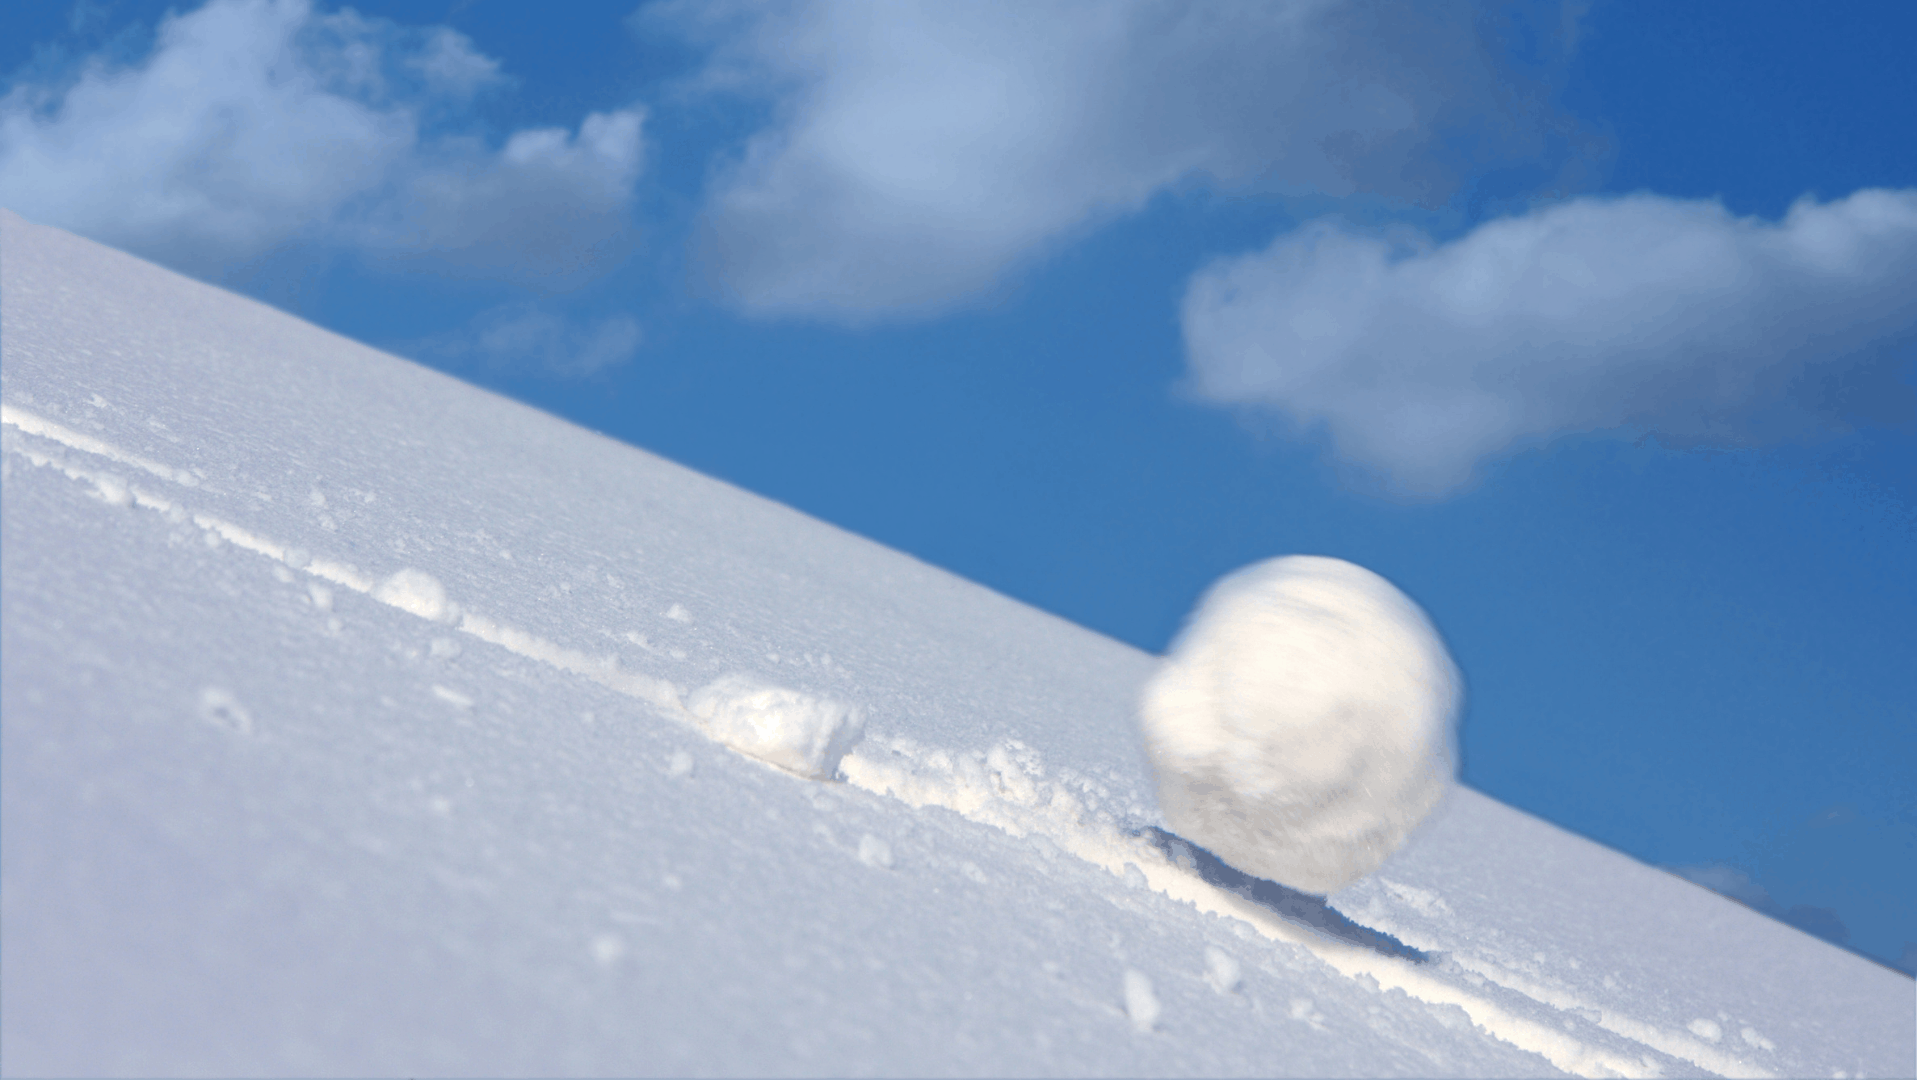 Snowball rolling quickly down a hill